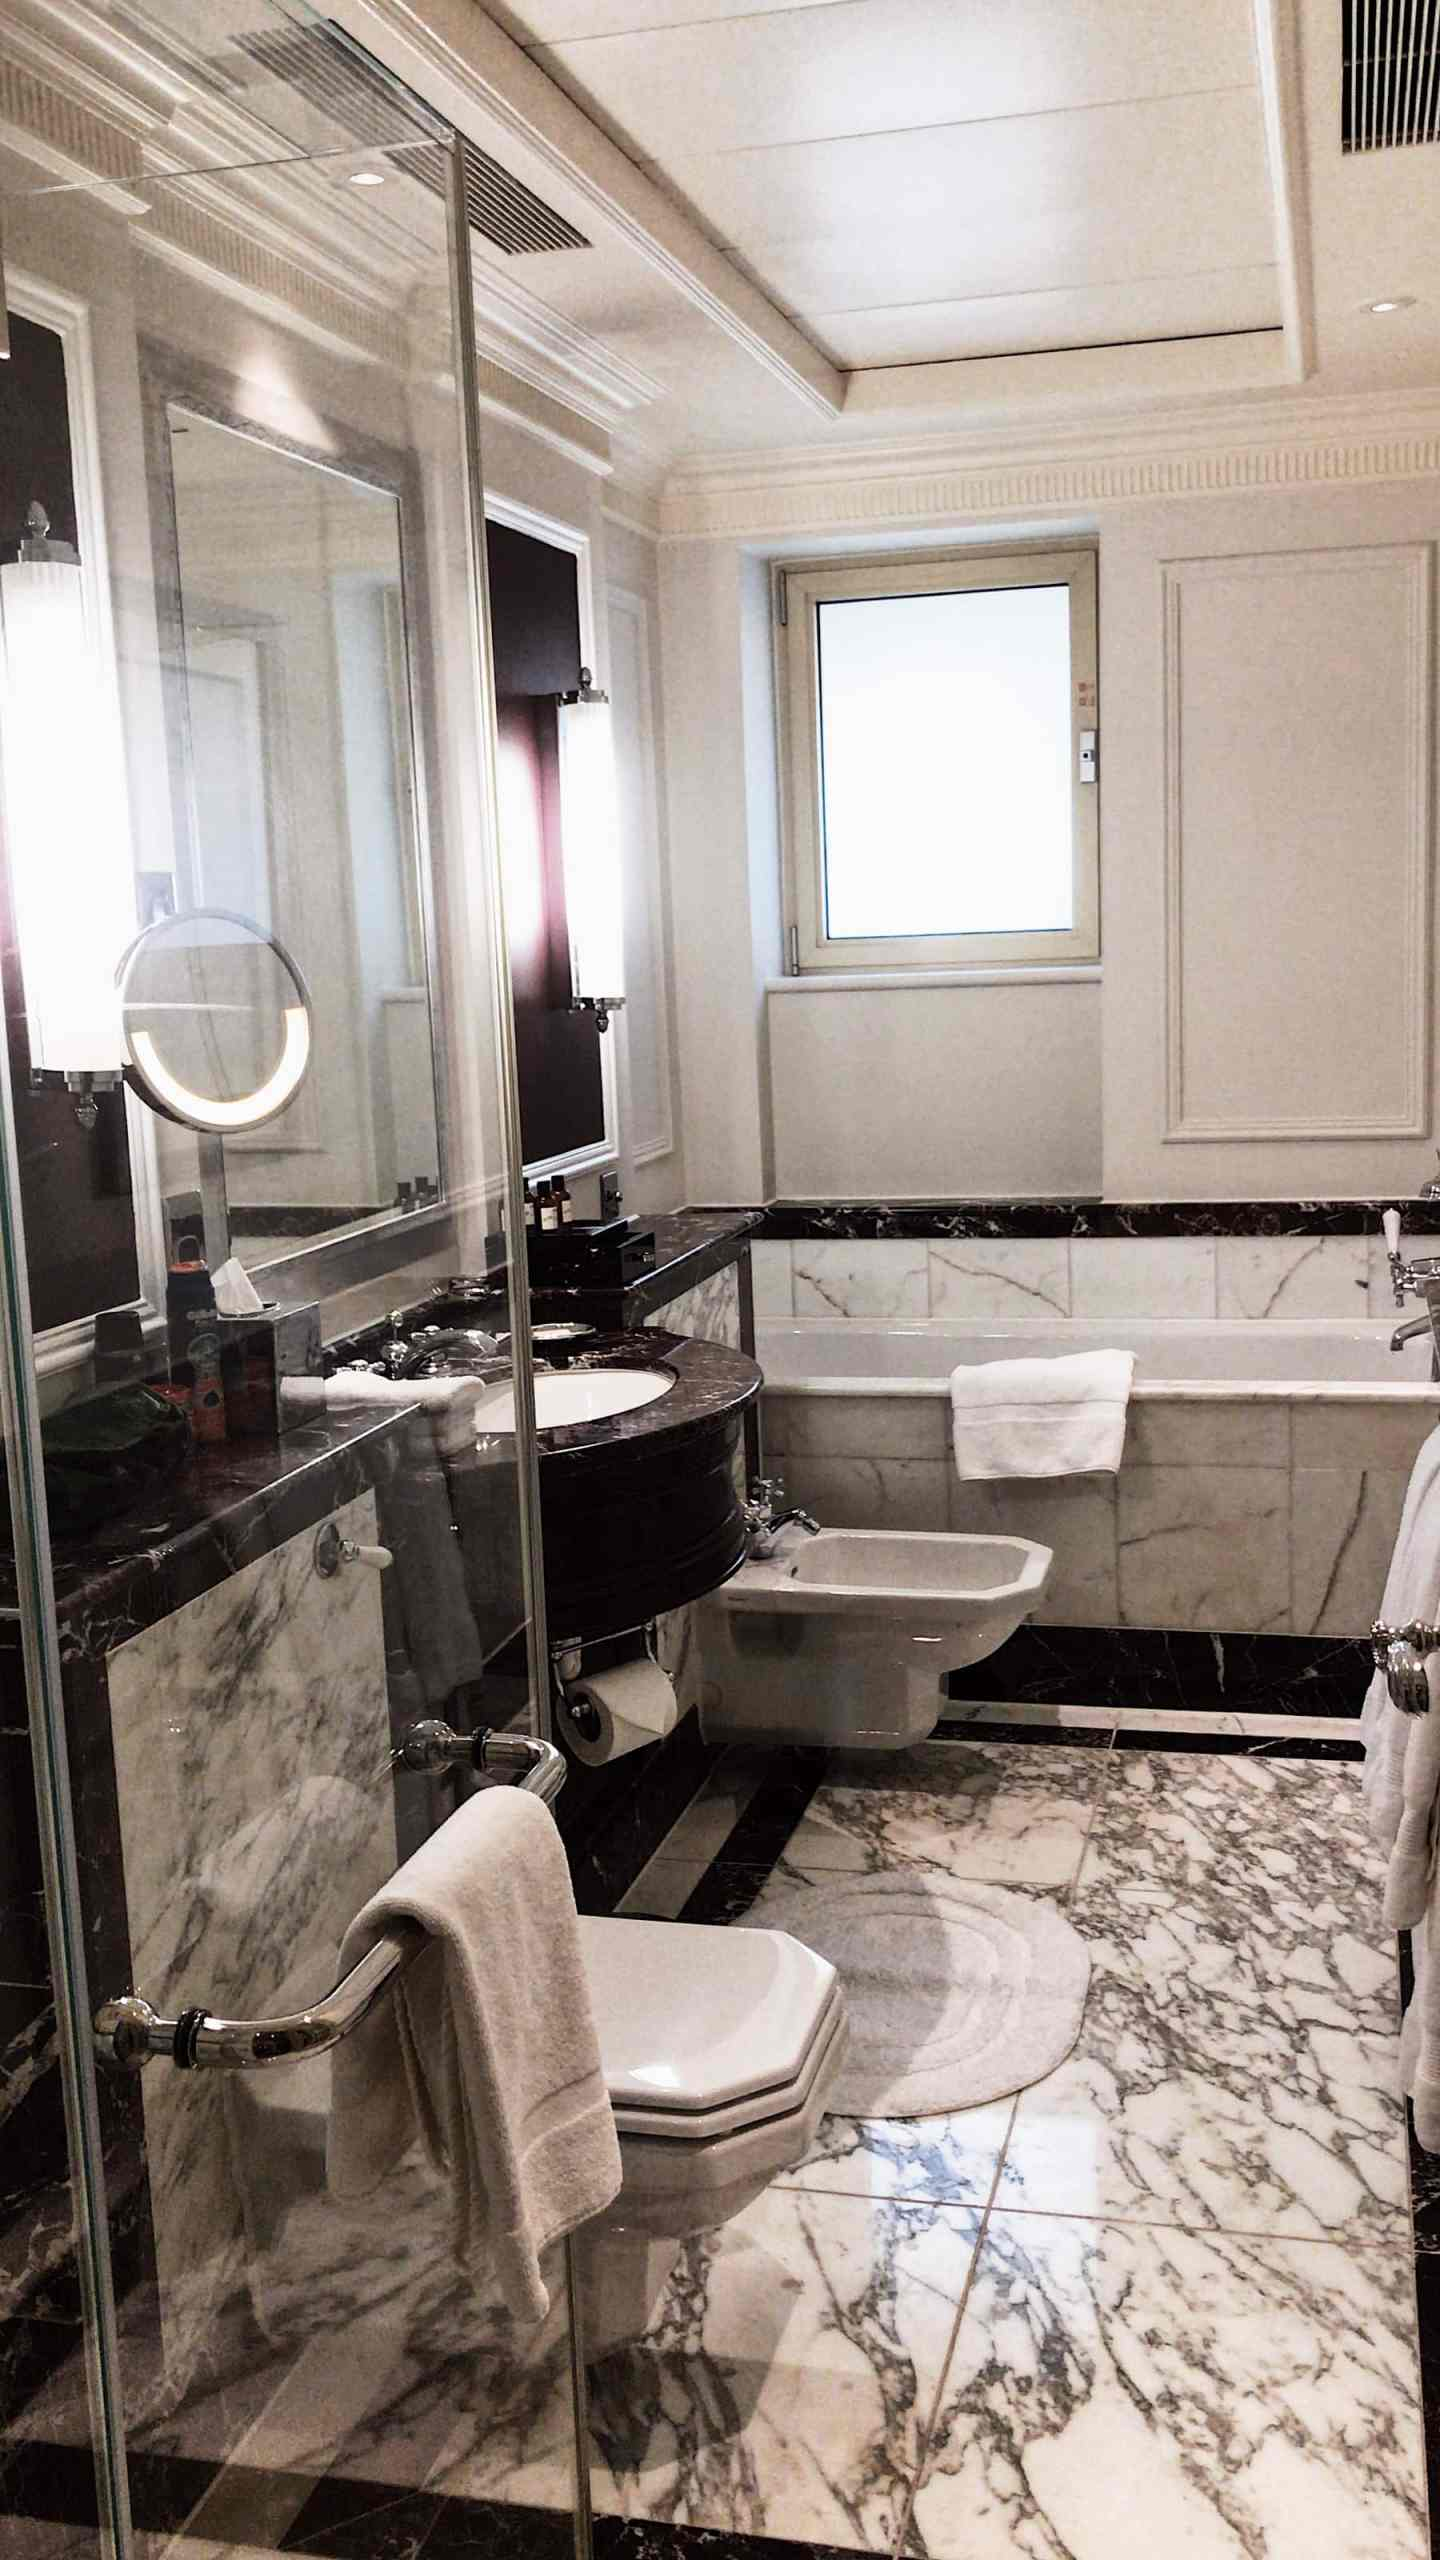 The luxurious marble bathroom